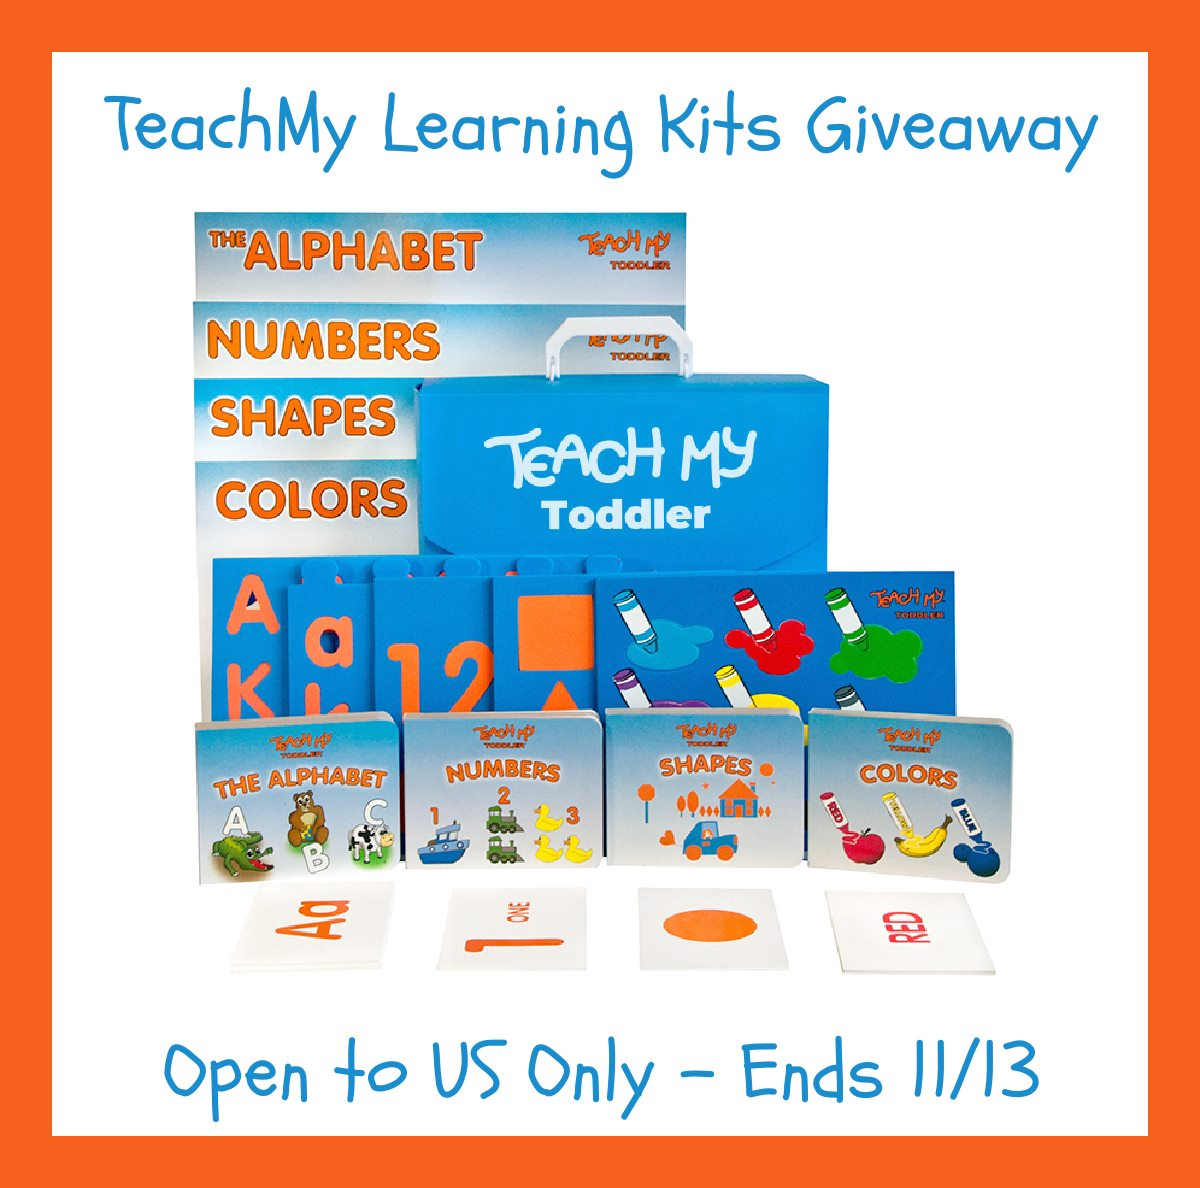 Encourage early screen-free learning! Enter to win 2 Teach My Learning Kits here!